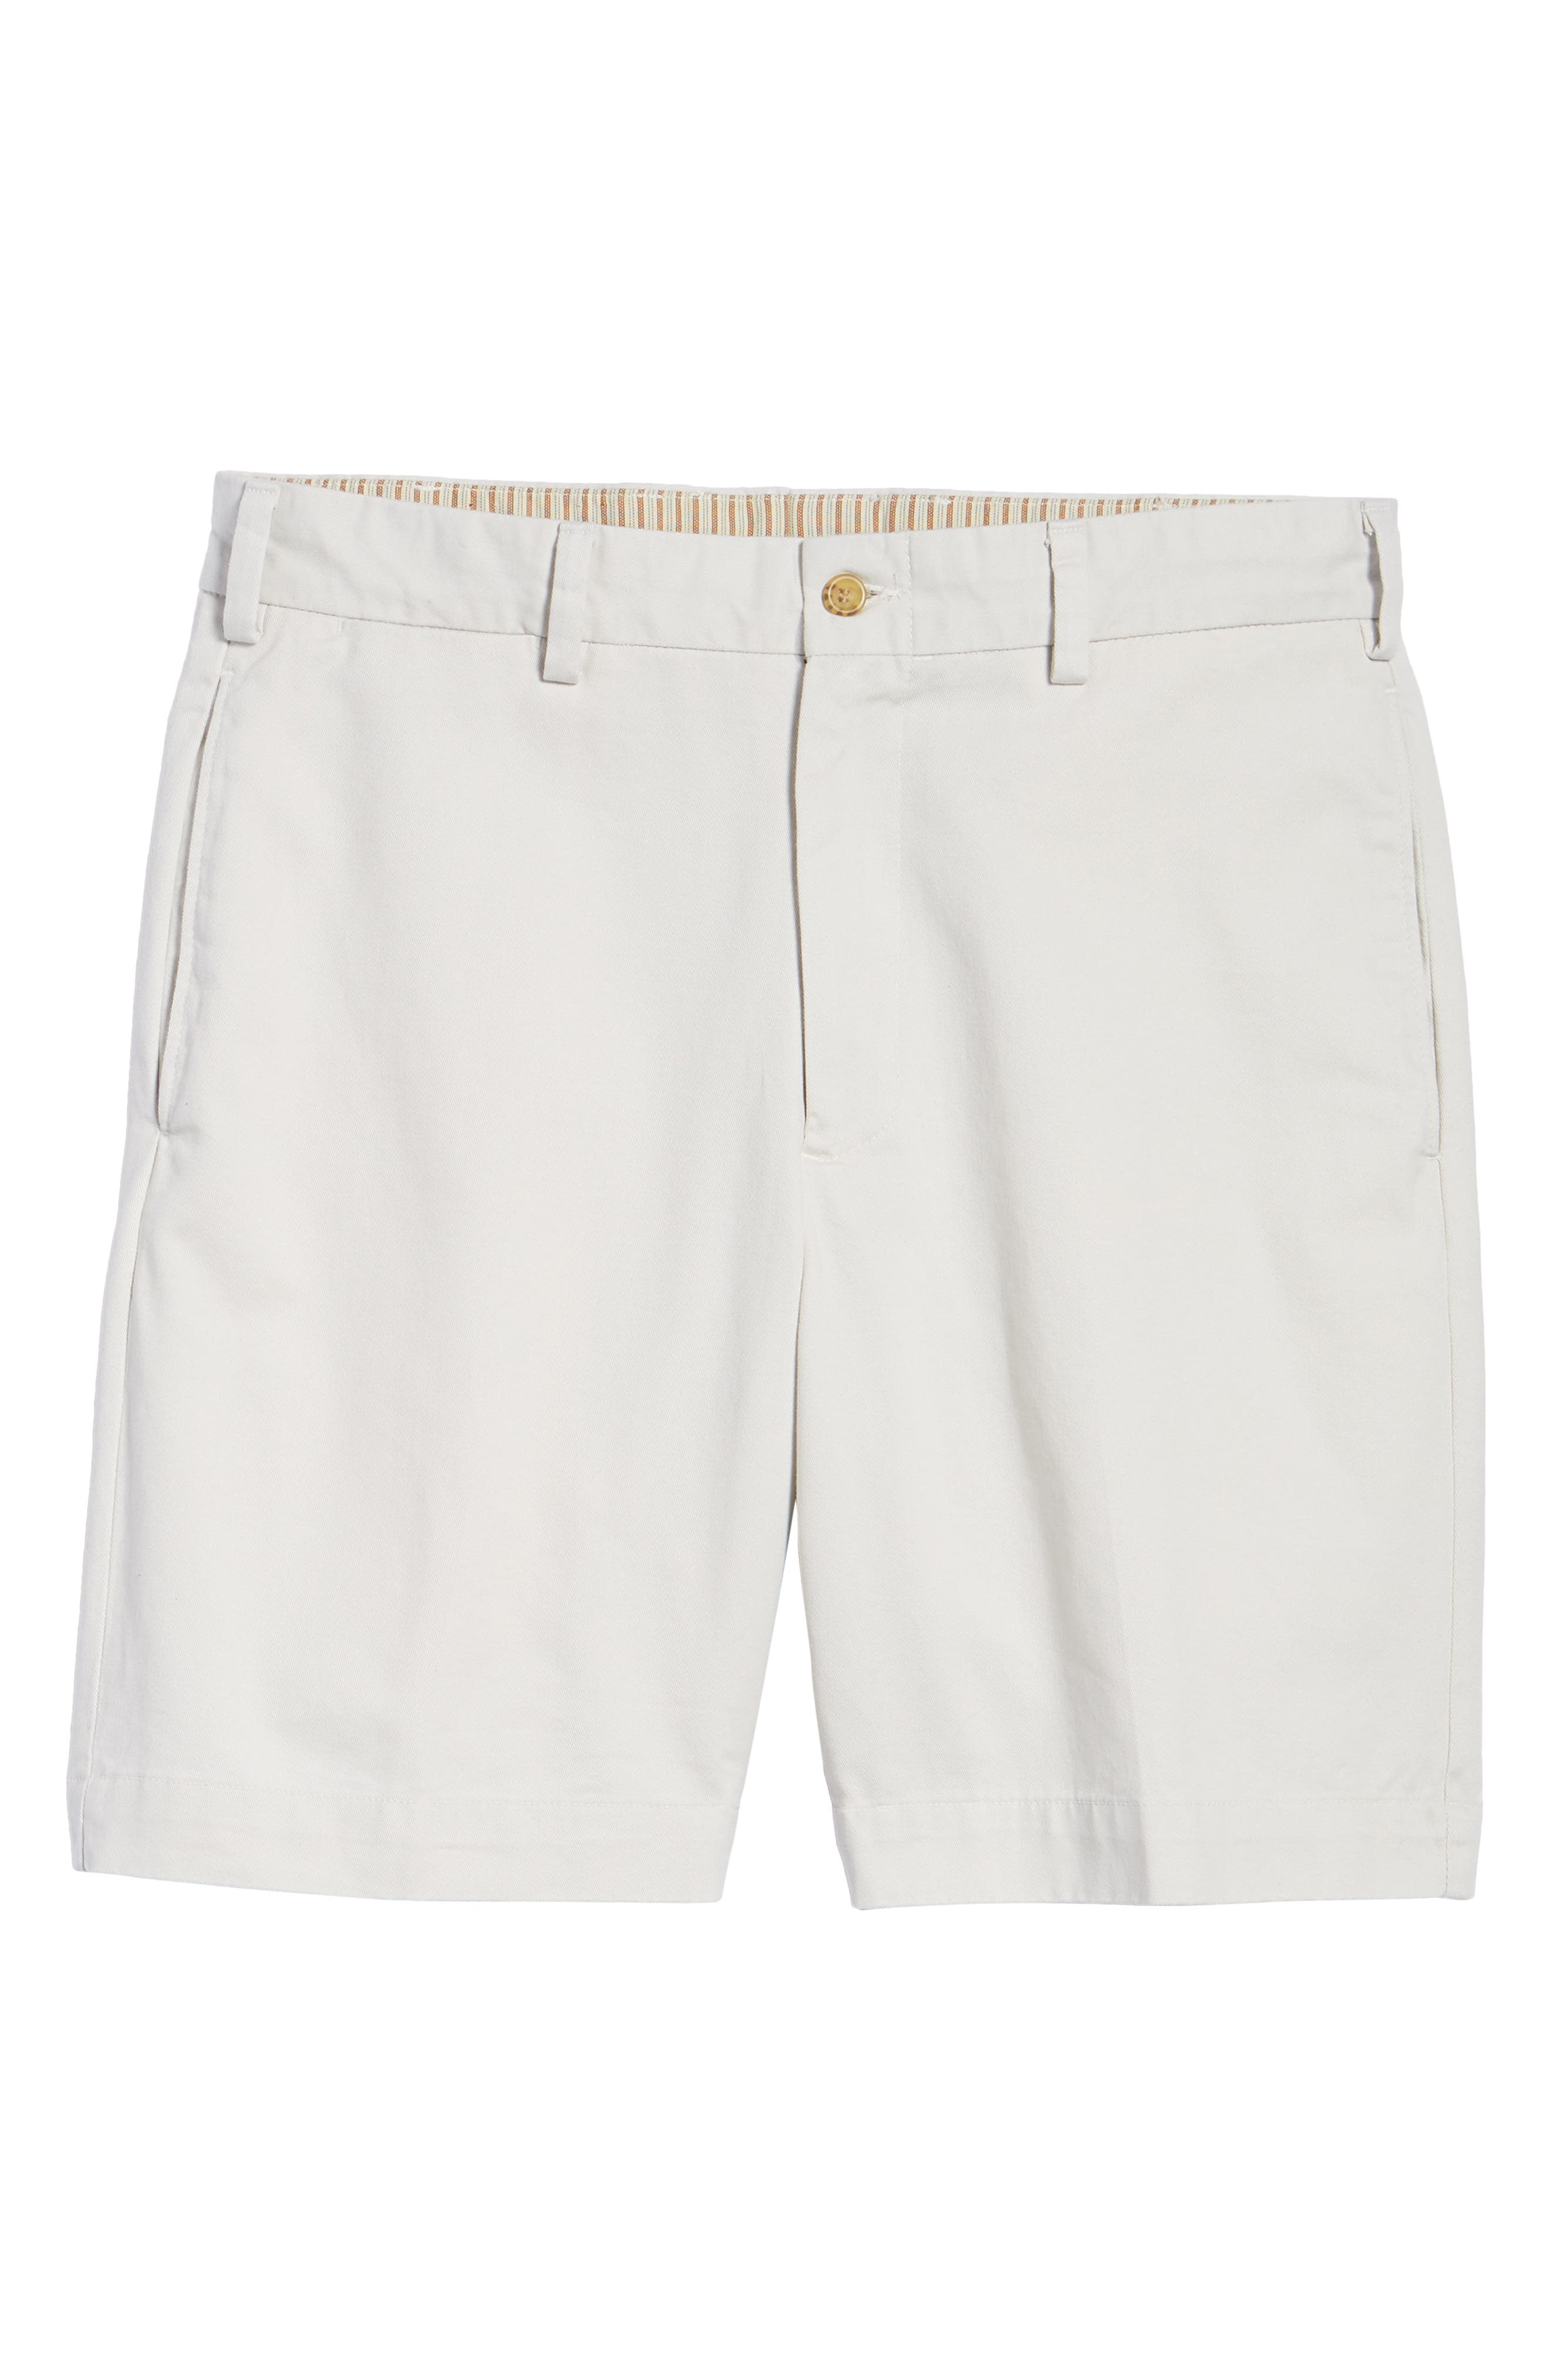 M2 Classic Fit Flat Front Vintage Twill Shorts,                             Alternate thumbnail 6, color,                             Stone